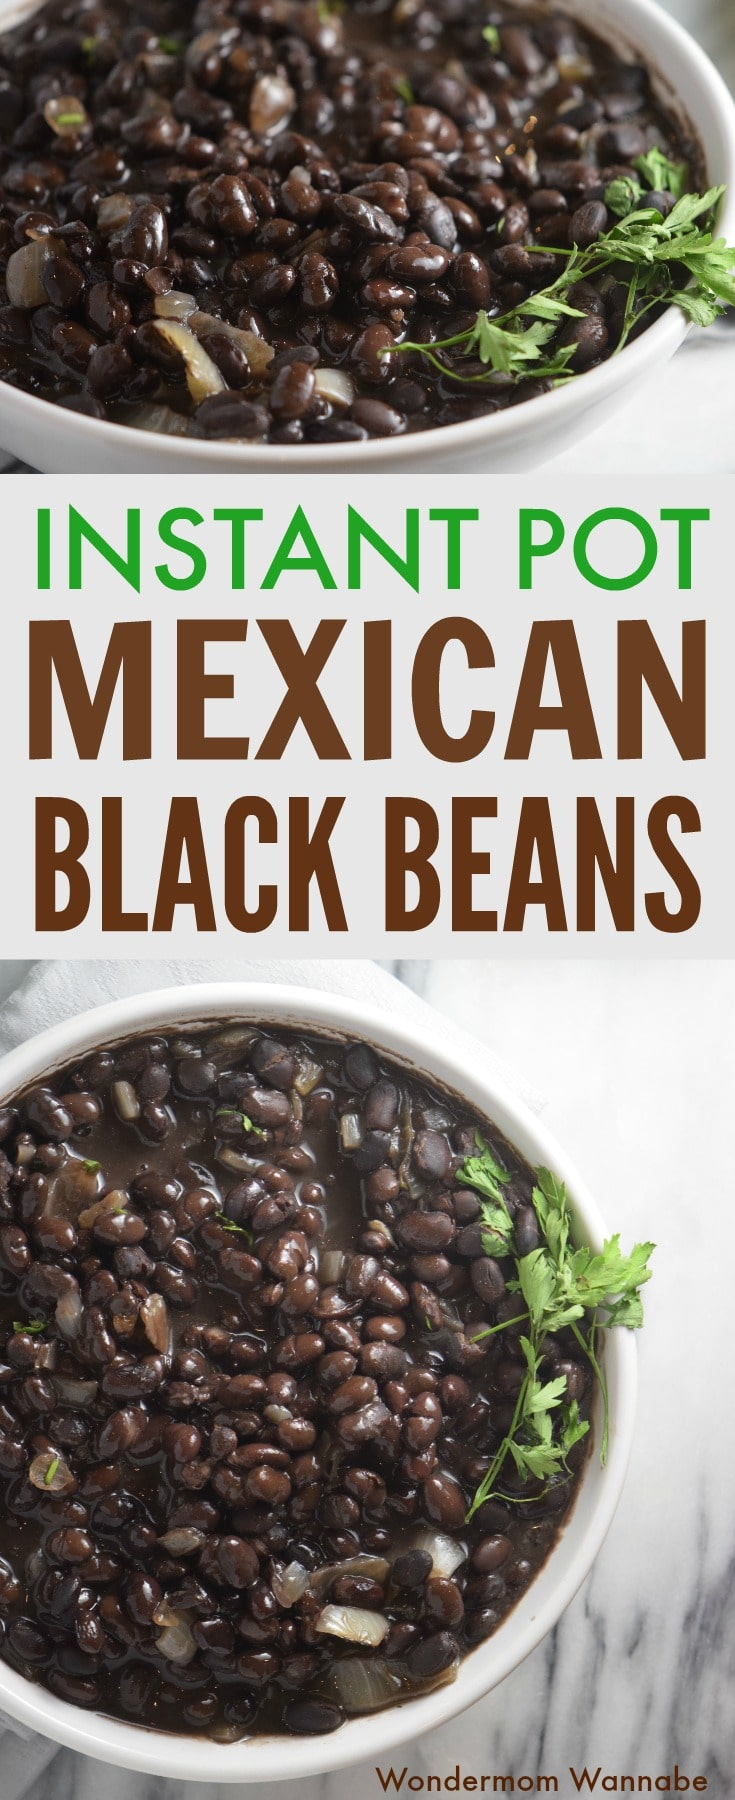 a collage of black beans in a white bowl on a kitchen counter with title text reading Instant Pot Mexican Black Beans